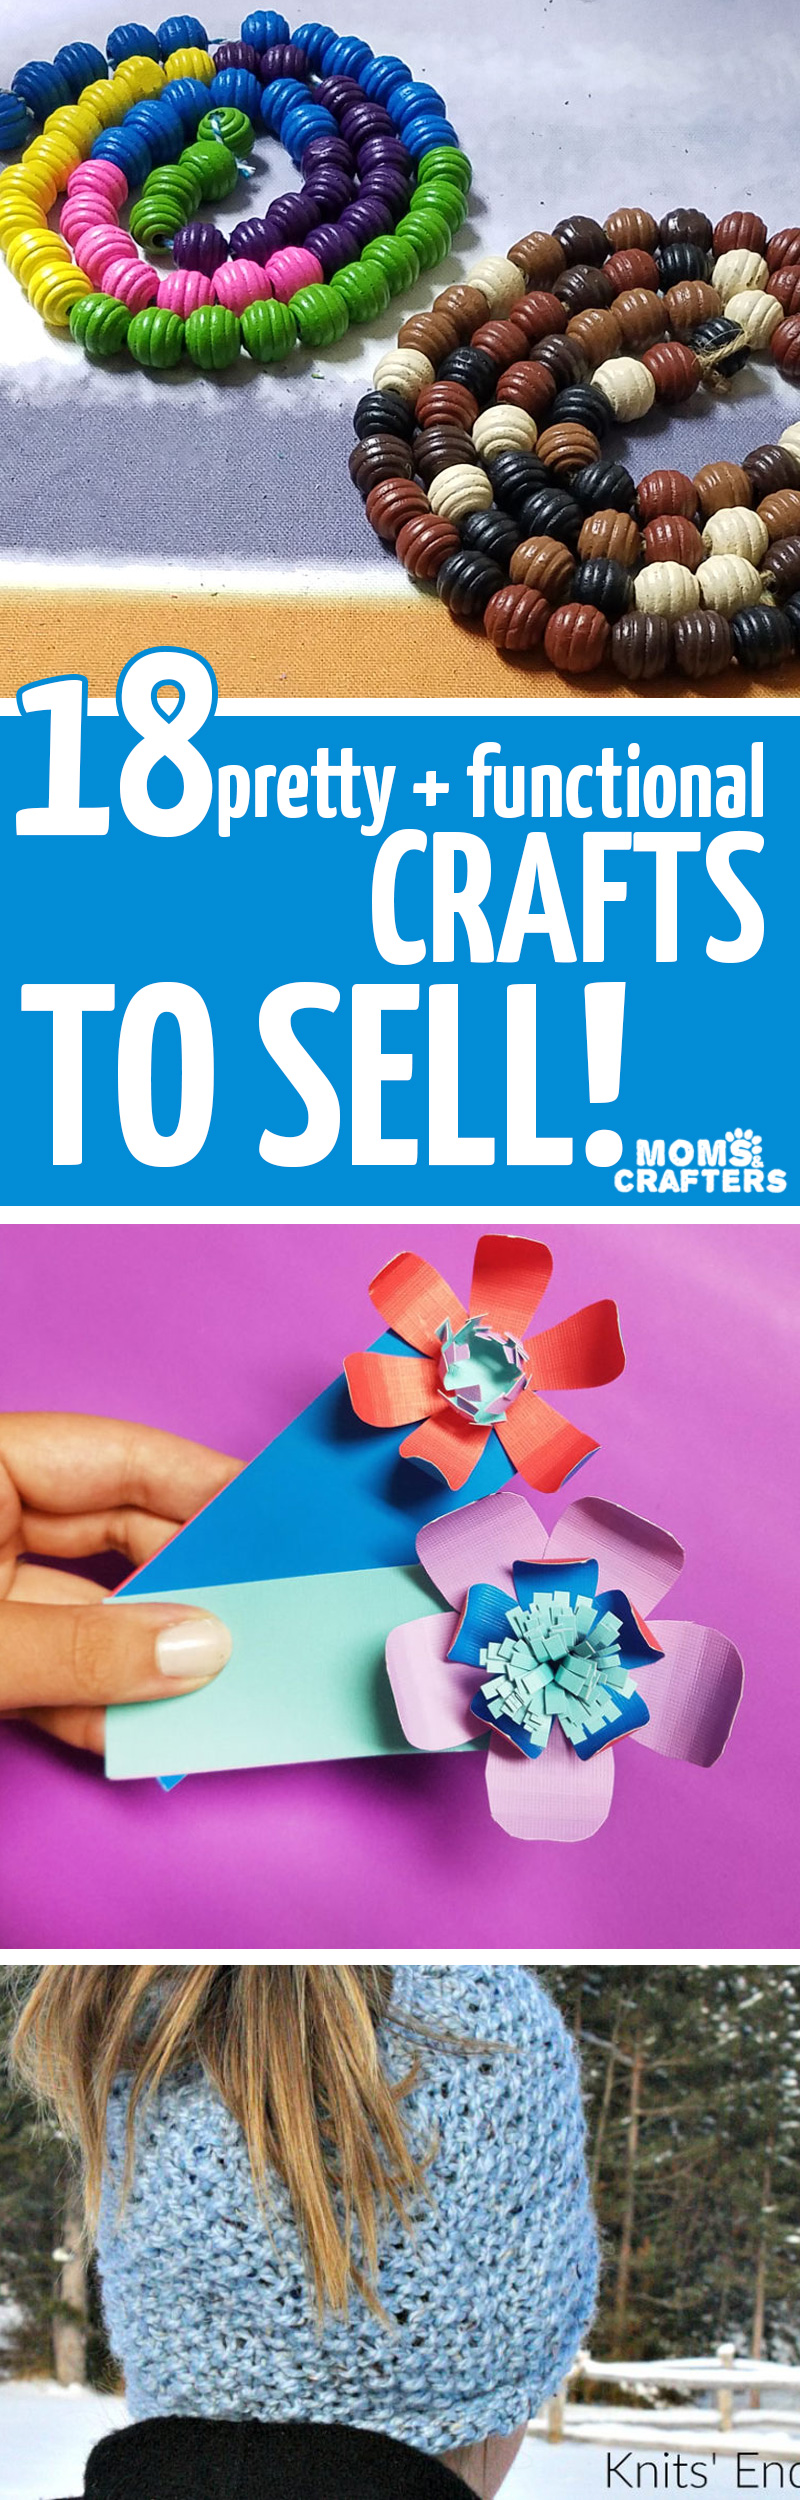 Things to make and sell at home moms and crafters for Cheap crafts to make and sell